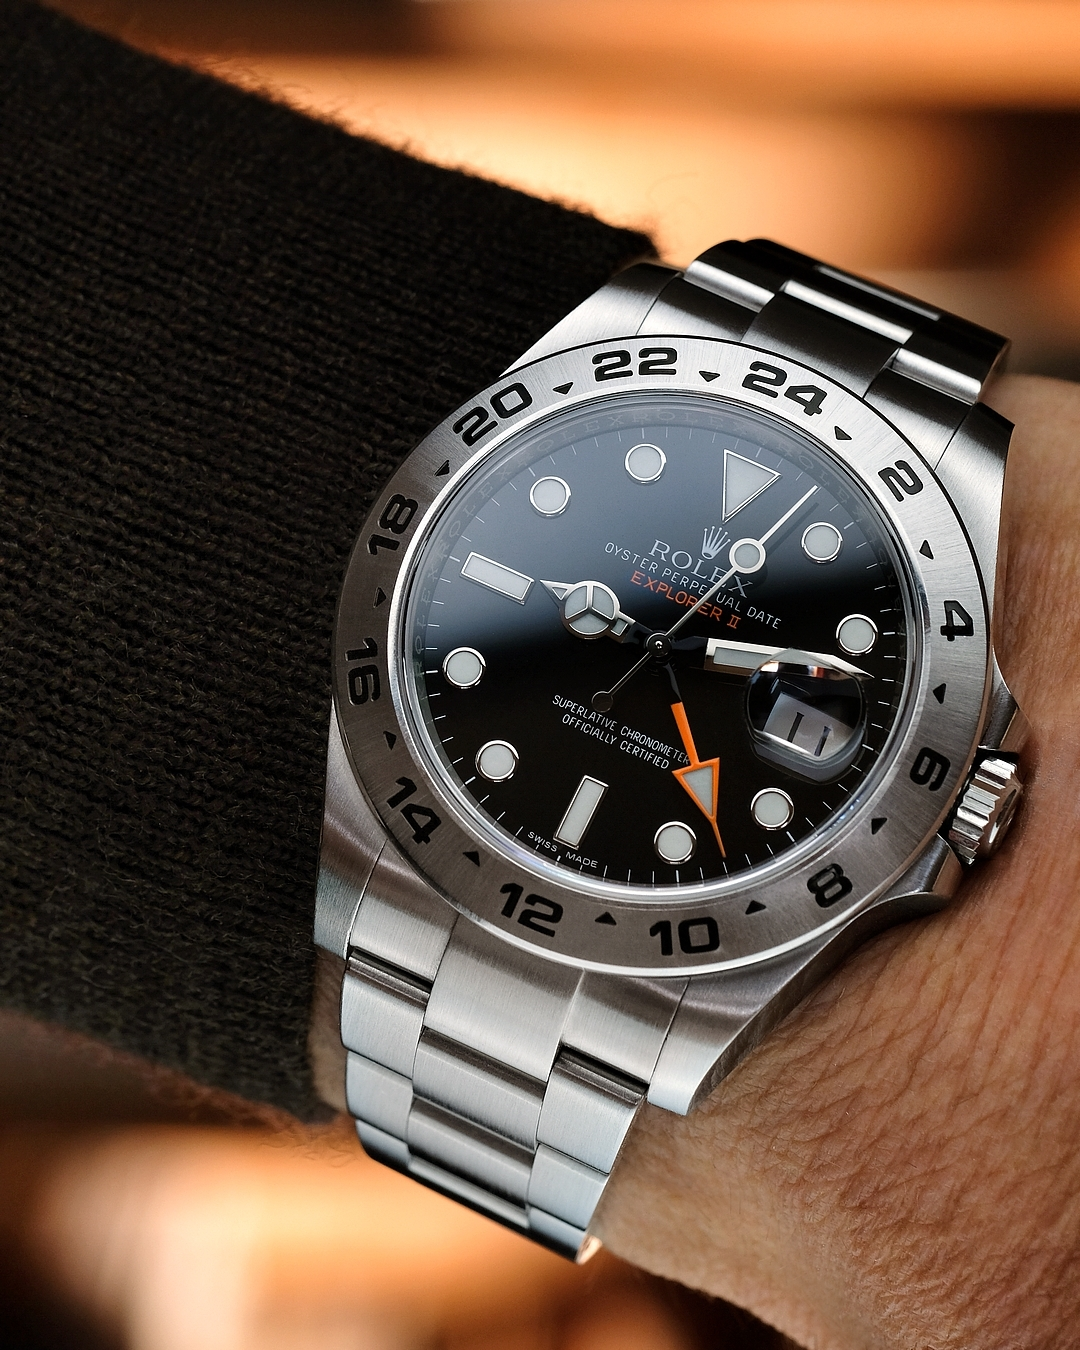 Why is the Rolex Explorer II Ref. 216570 the Luke Hemsworth in the Professional family?